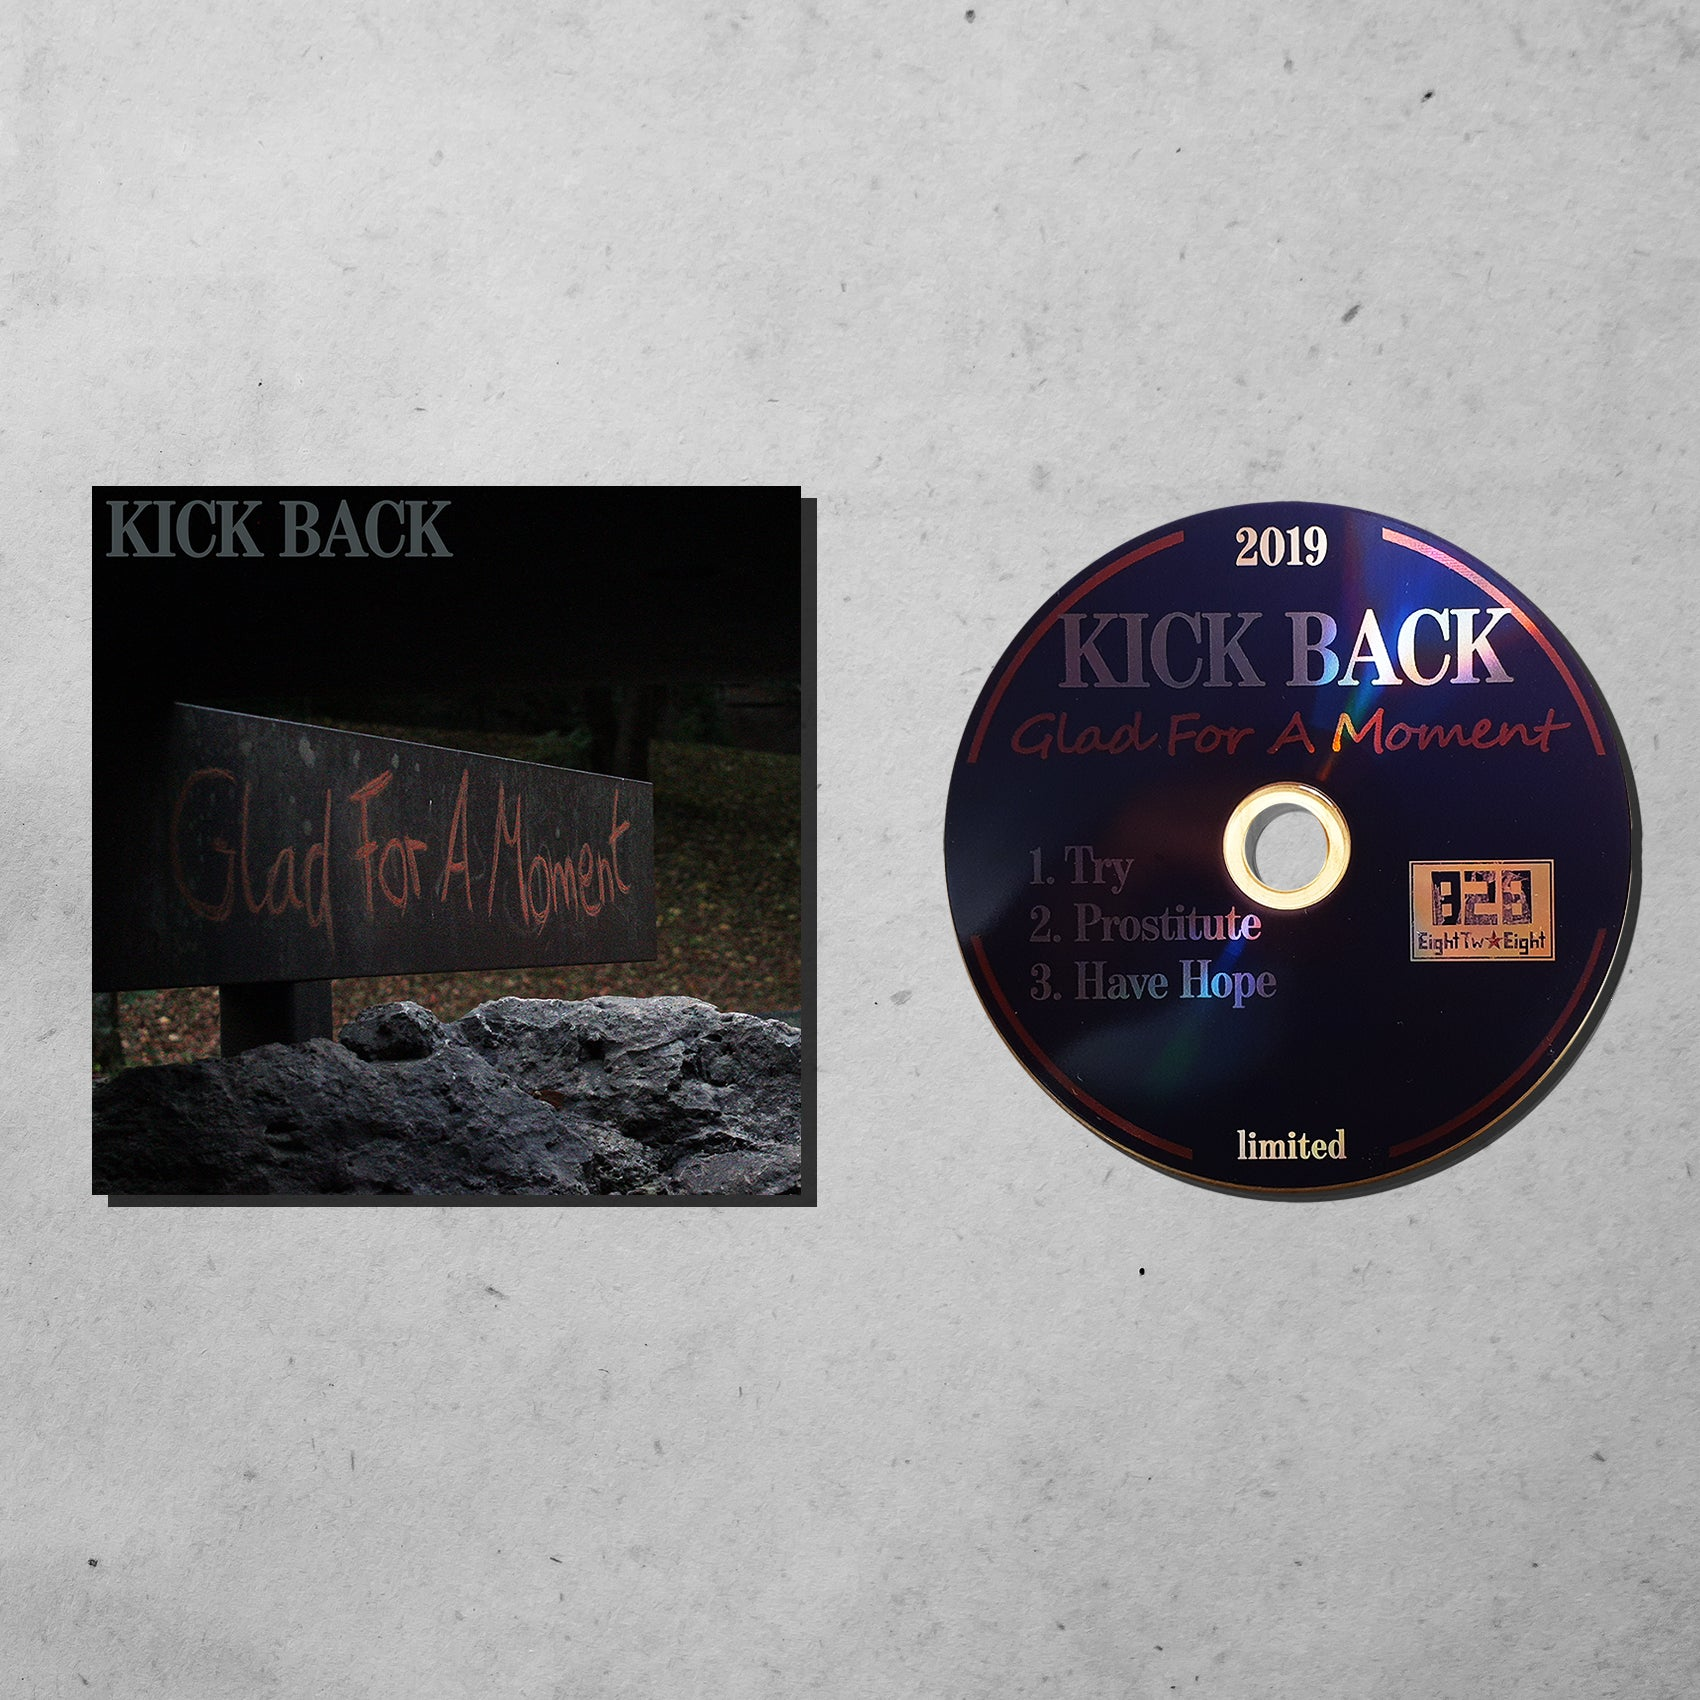 CD: Kick Back - Glad For A Moment